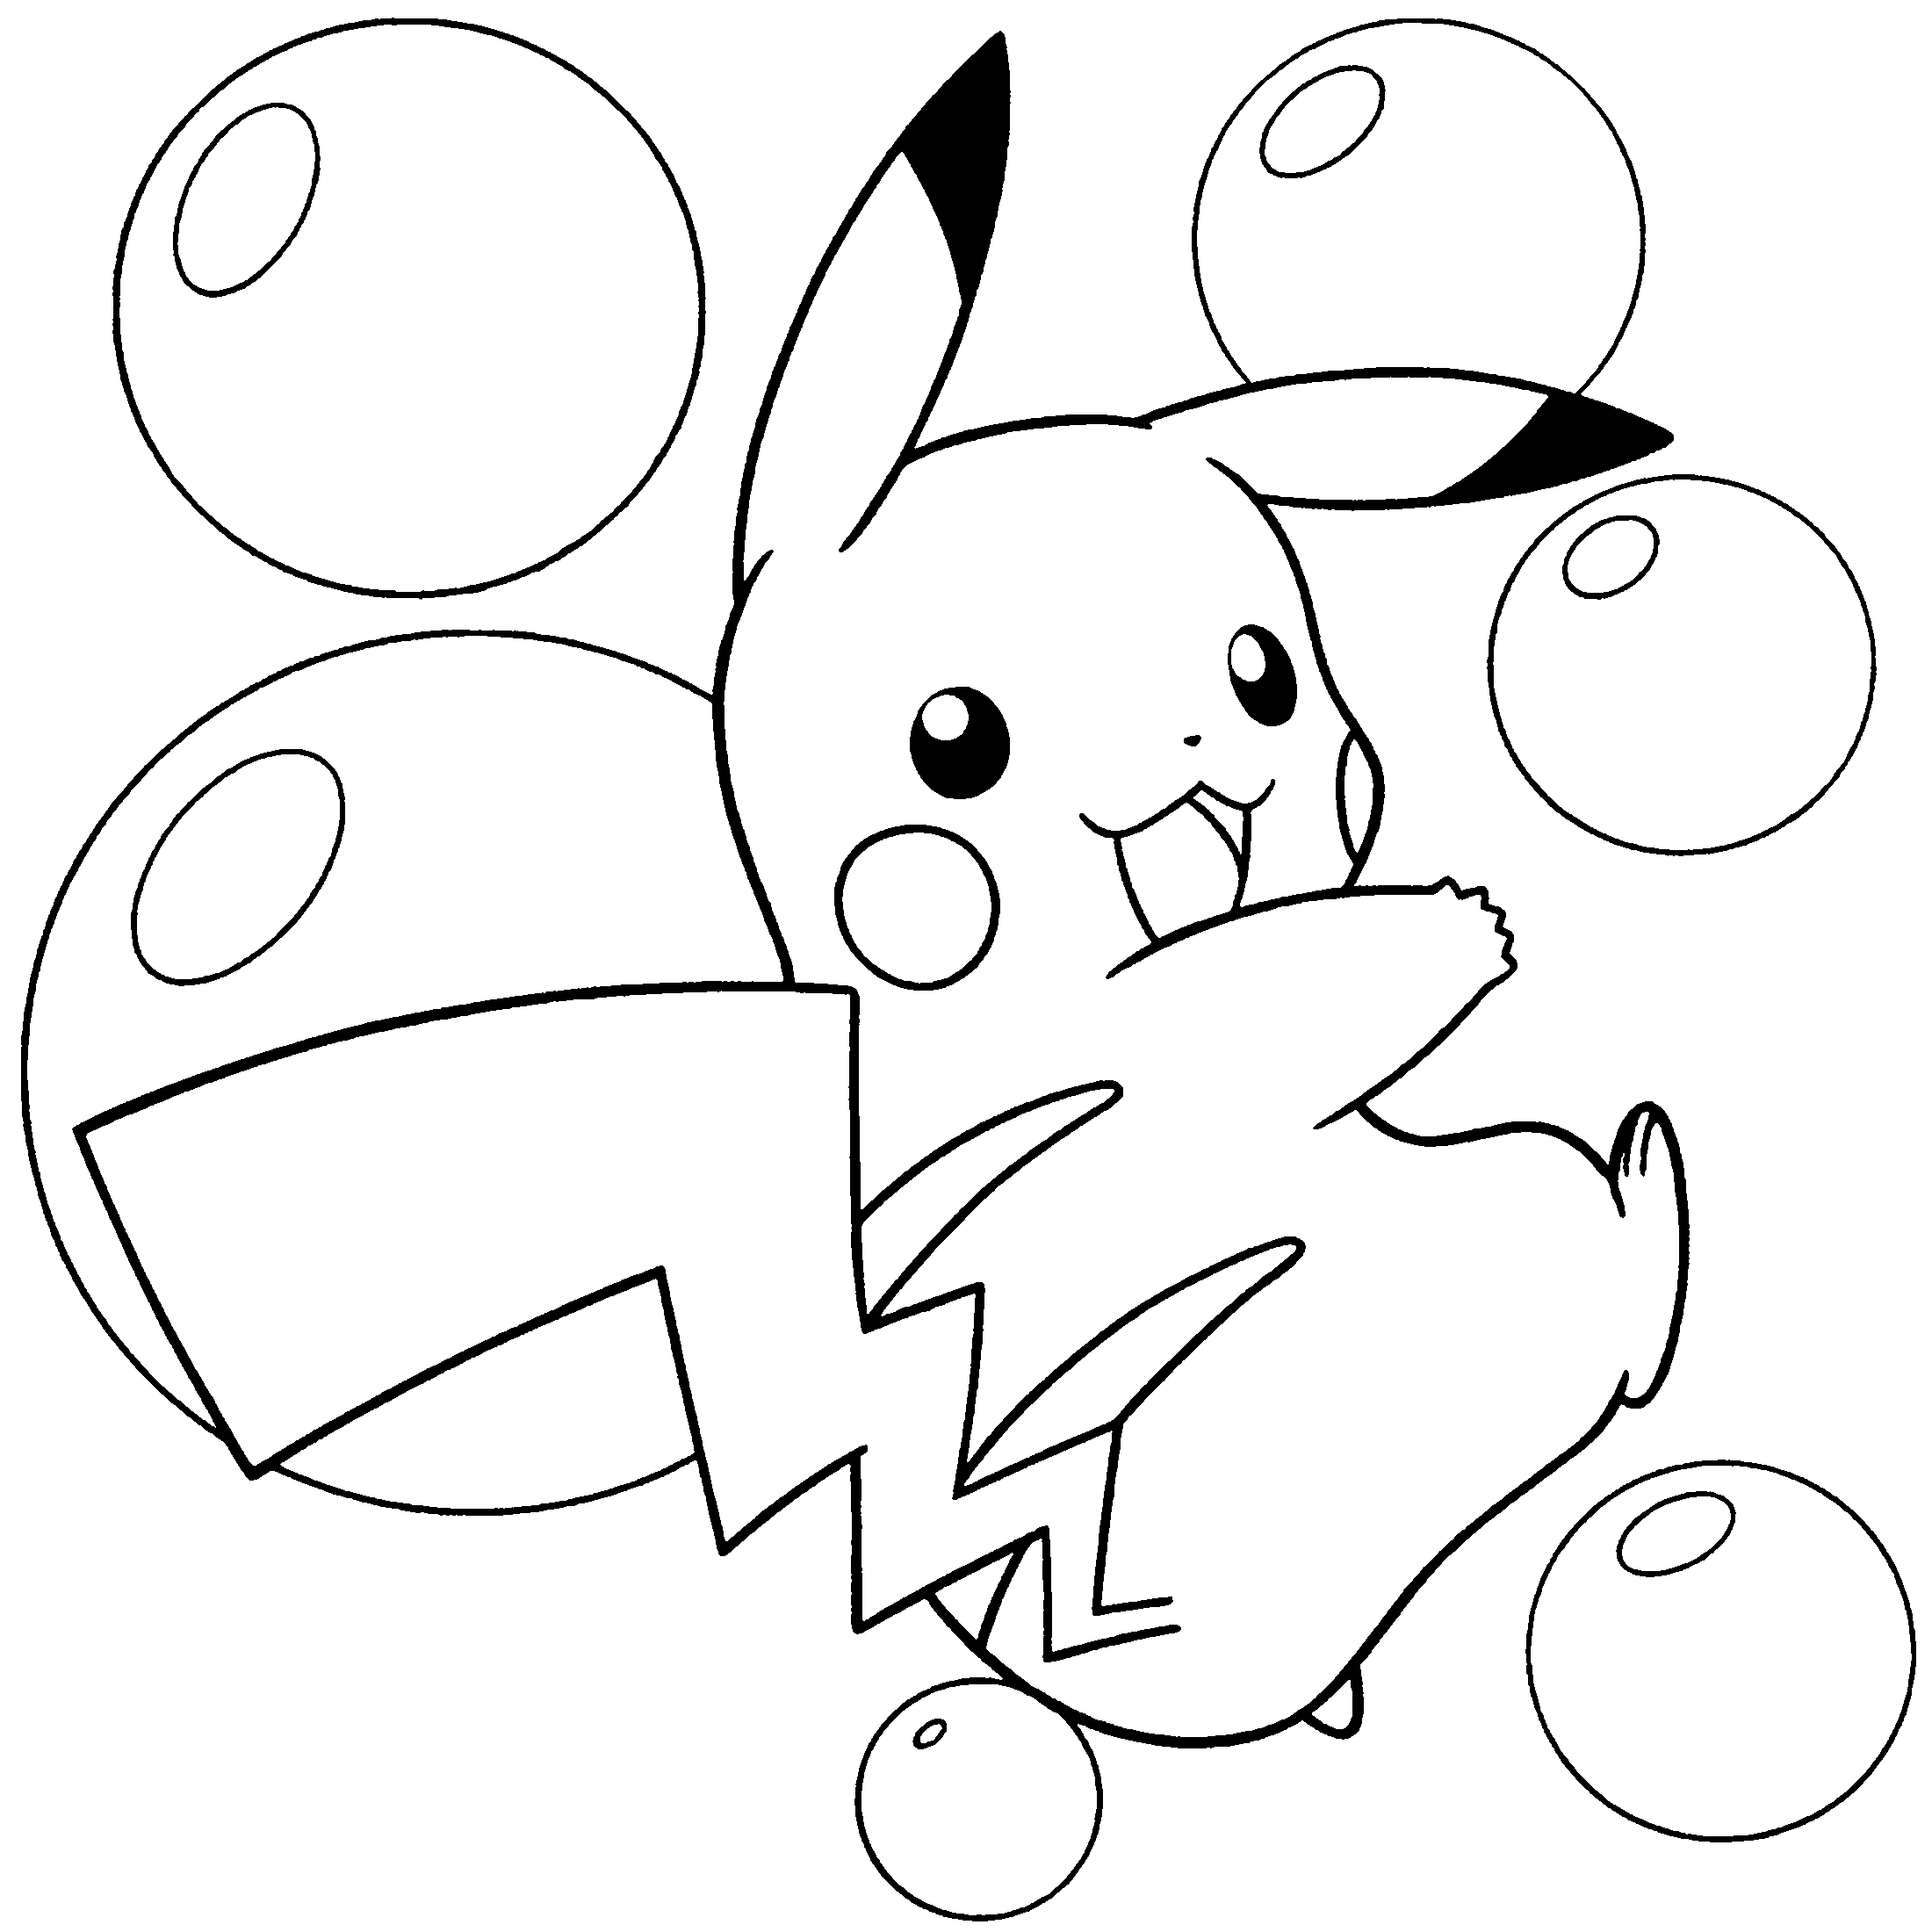 Coloring Page Tv Series Coloring Page Pokemon Diamond Pearl | PicGifs.com